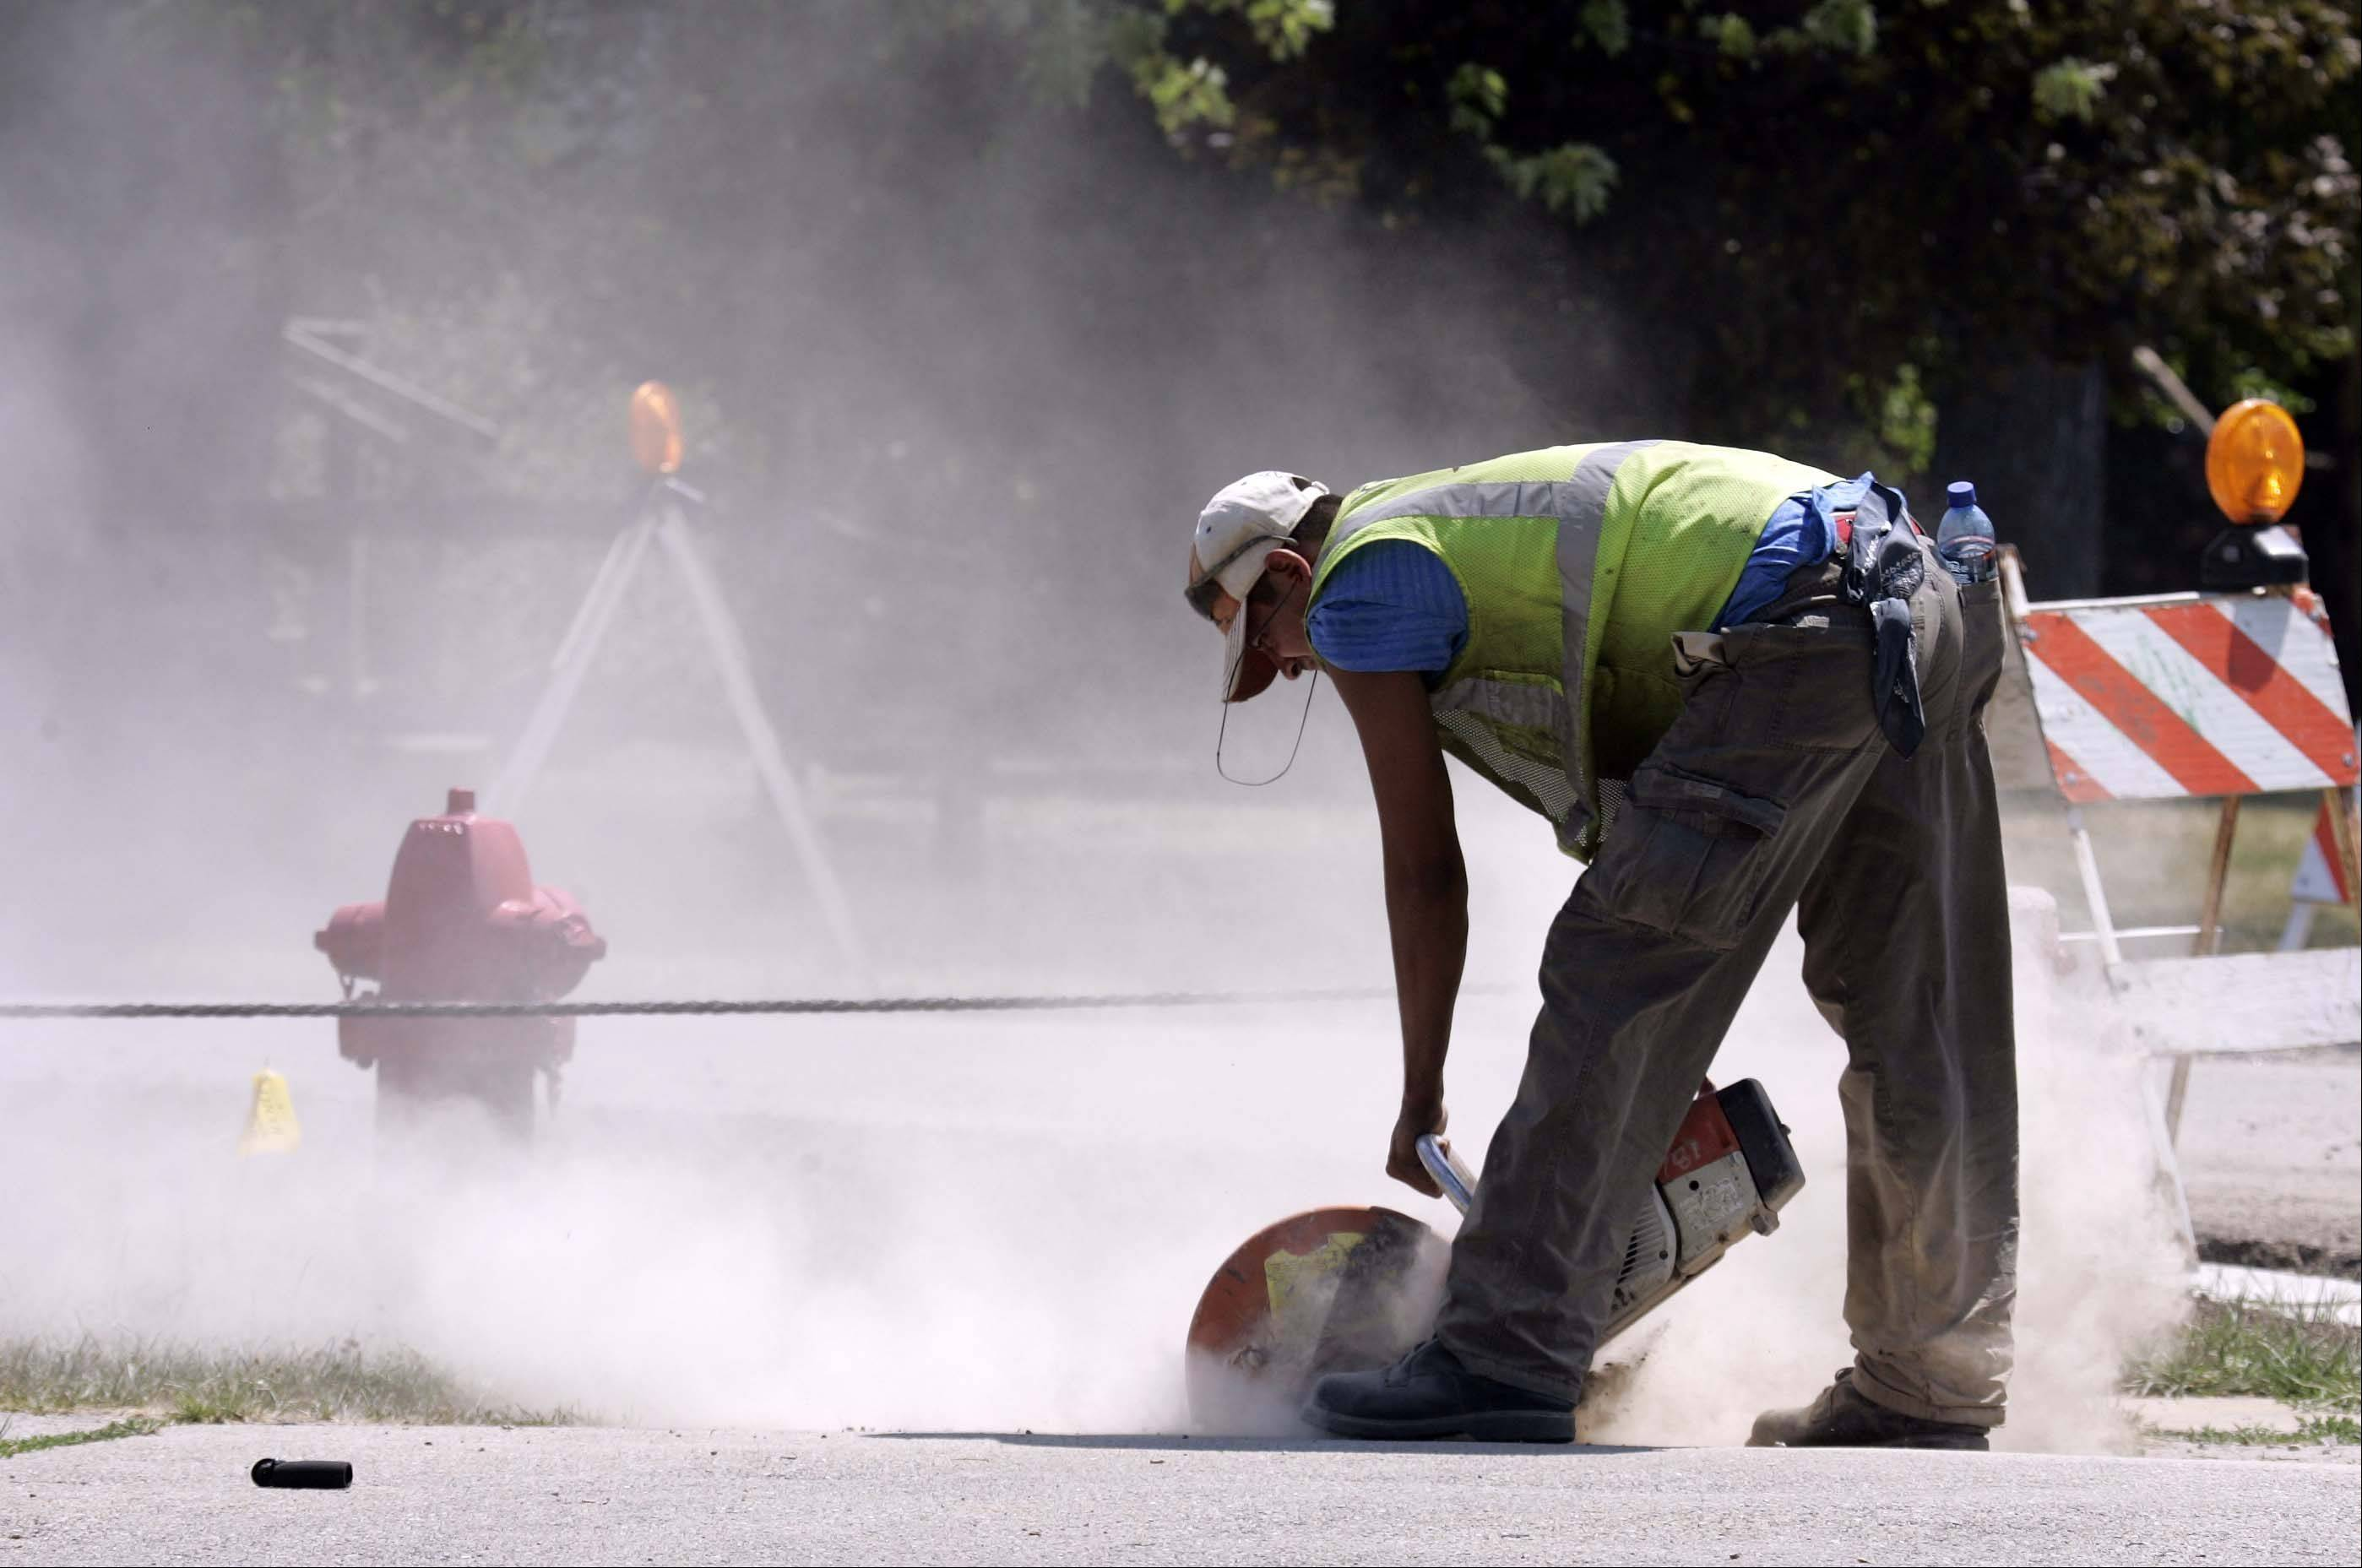 Arturo Garza of Hardin Paving Company paves works in the heat Tuesday in Geneva.